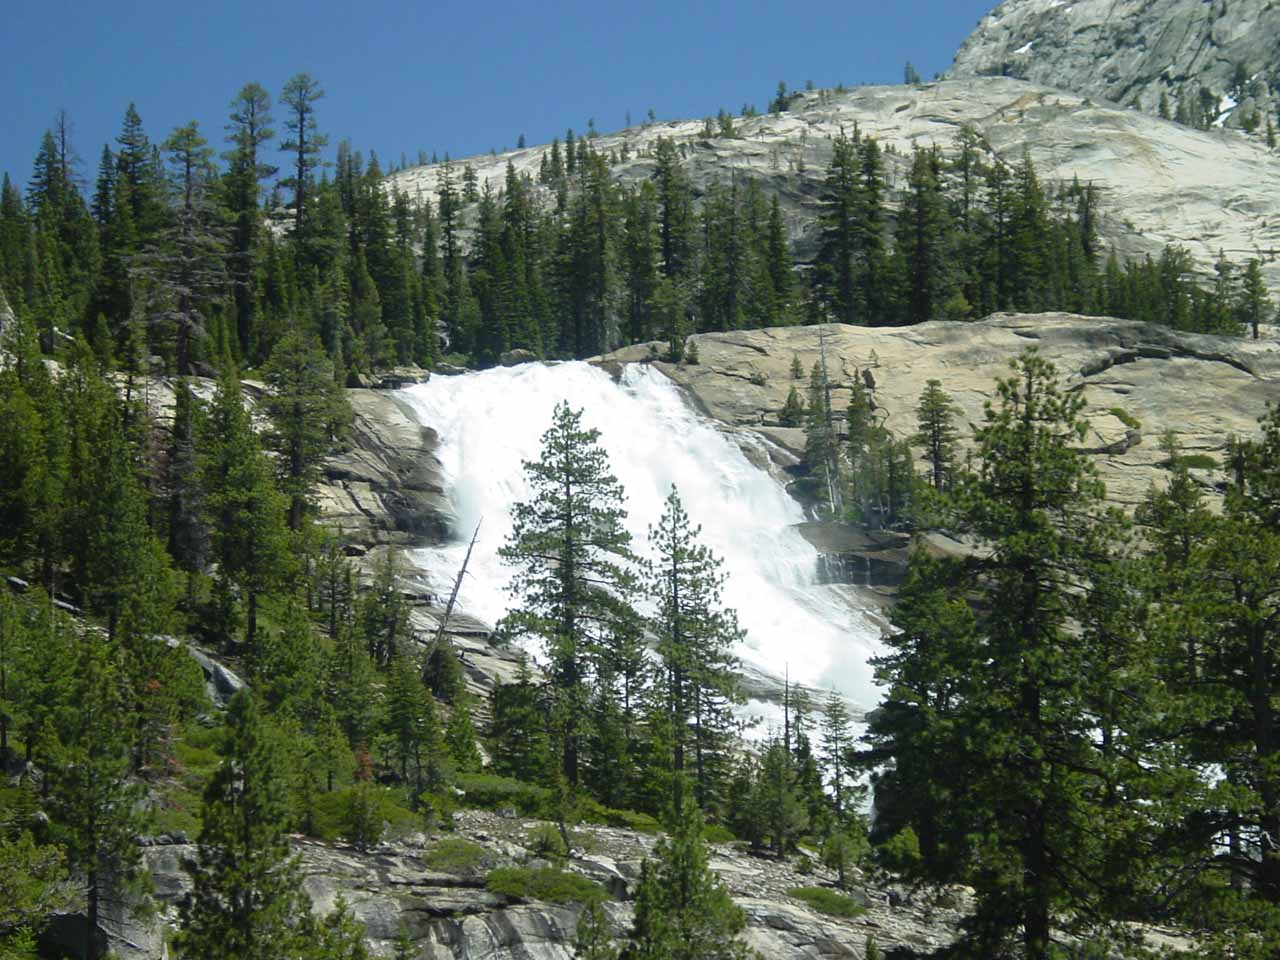 More direct view of LeConte Falls showing its width